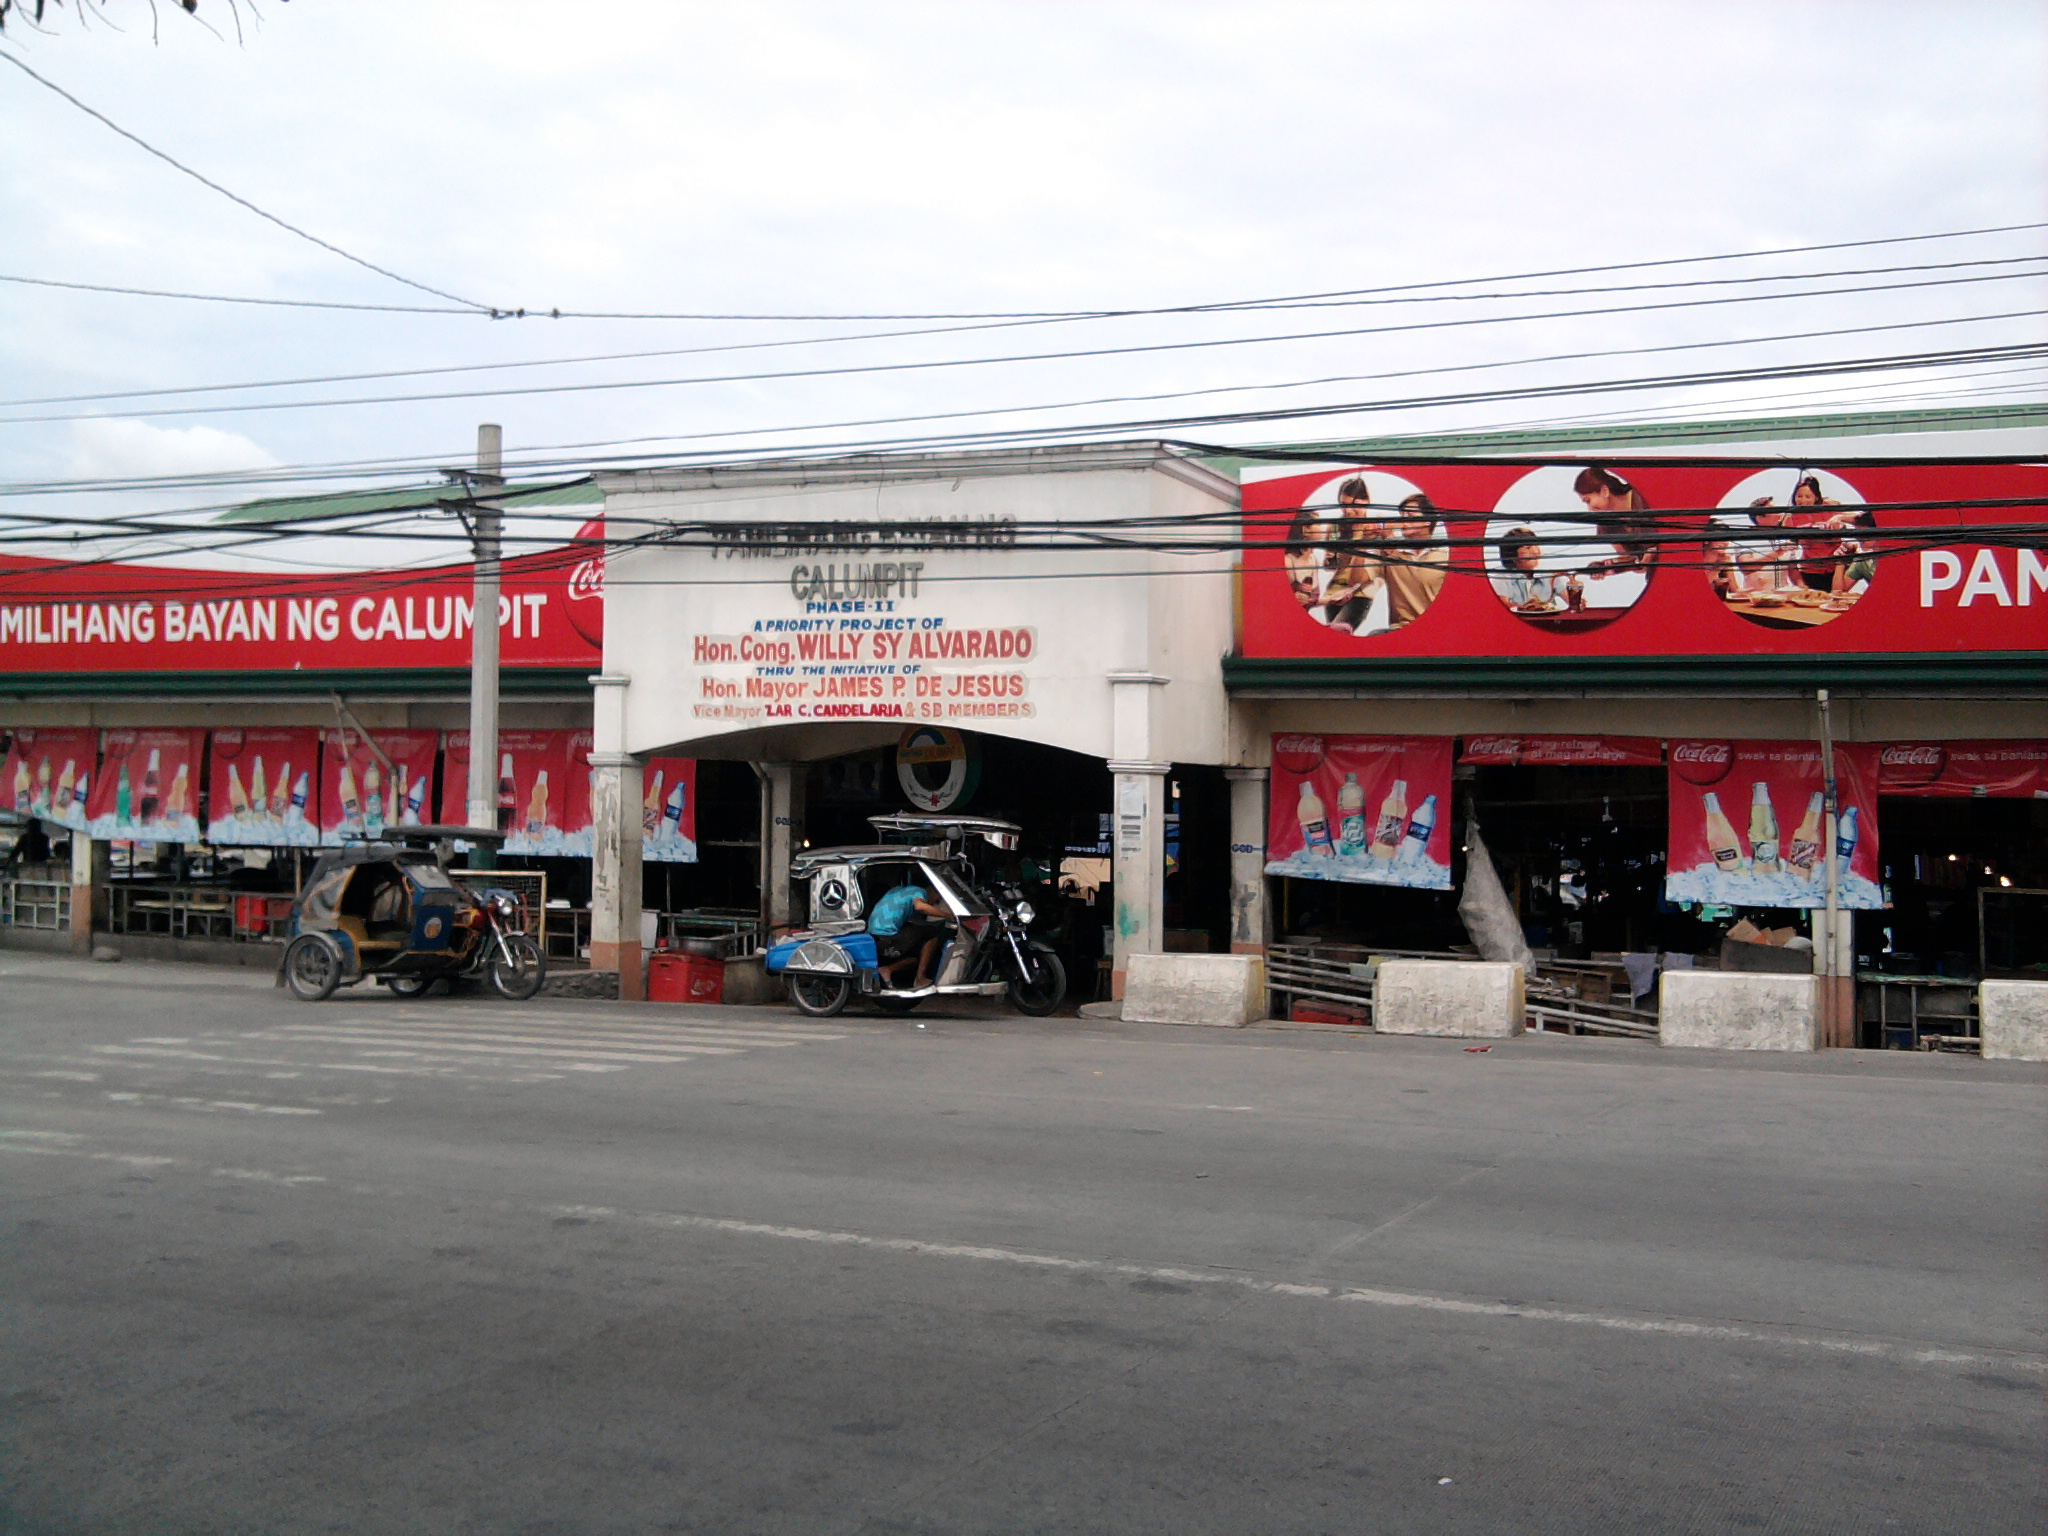 Calumpit Philippines  city photo : Calumpit Public Market Phase II, Mc Arthur Hwy, Corazon Gatbuca ...